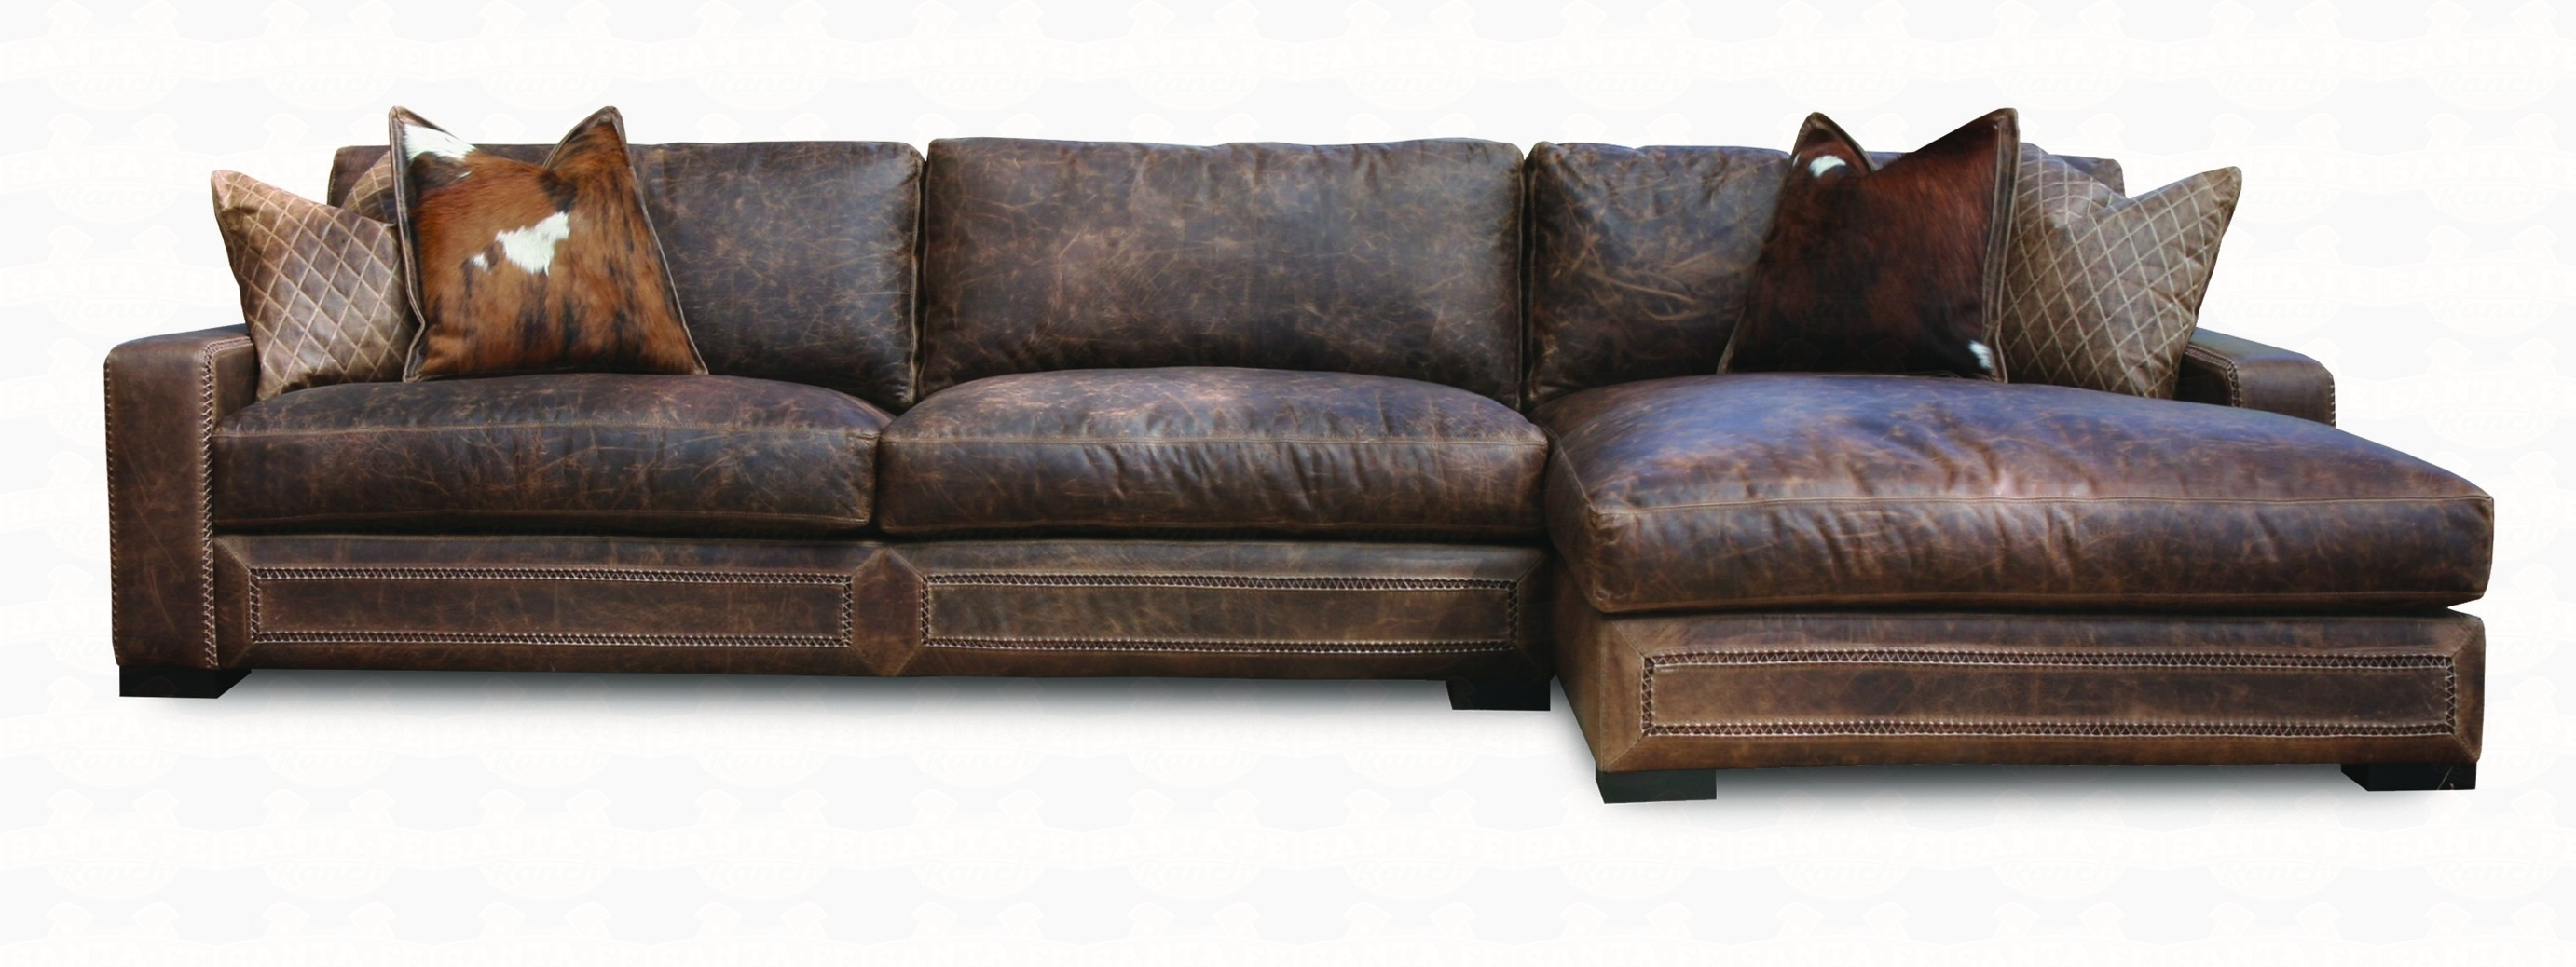 Leather Sectional Sofas Be Equipped Couch With Chaise Be Equipped Within Leather Sectional Sofas (View 7 of 10)